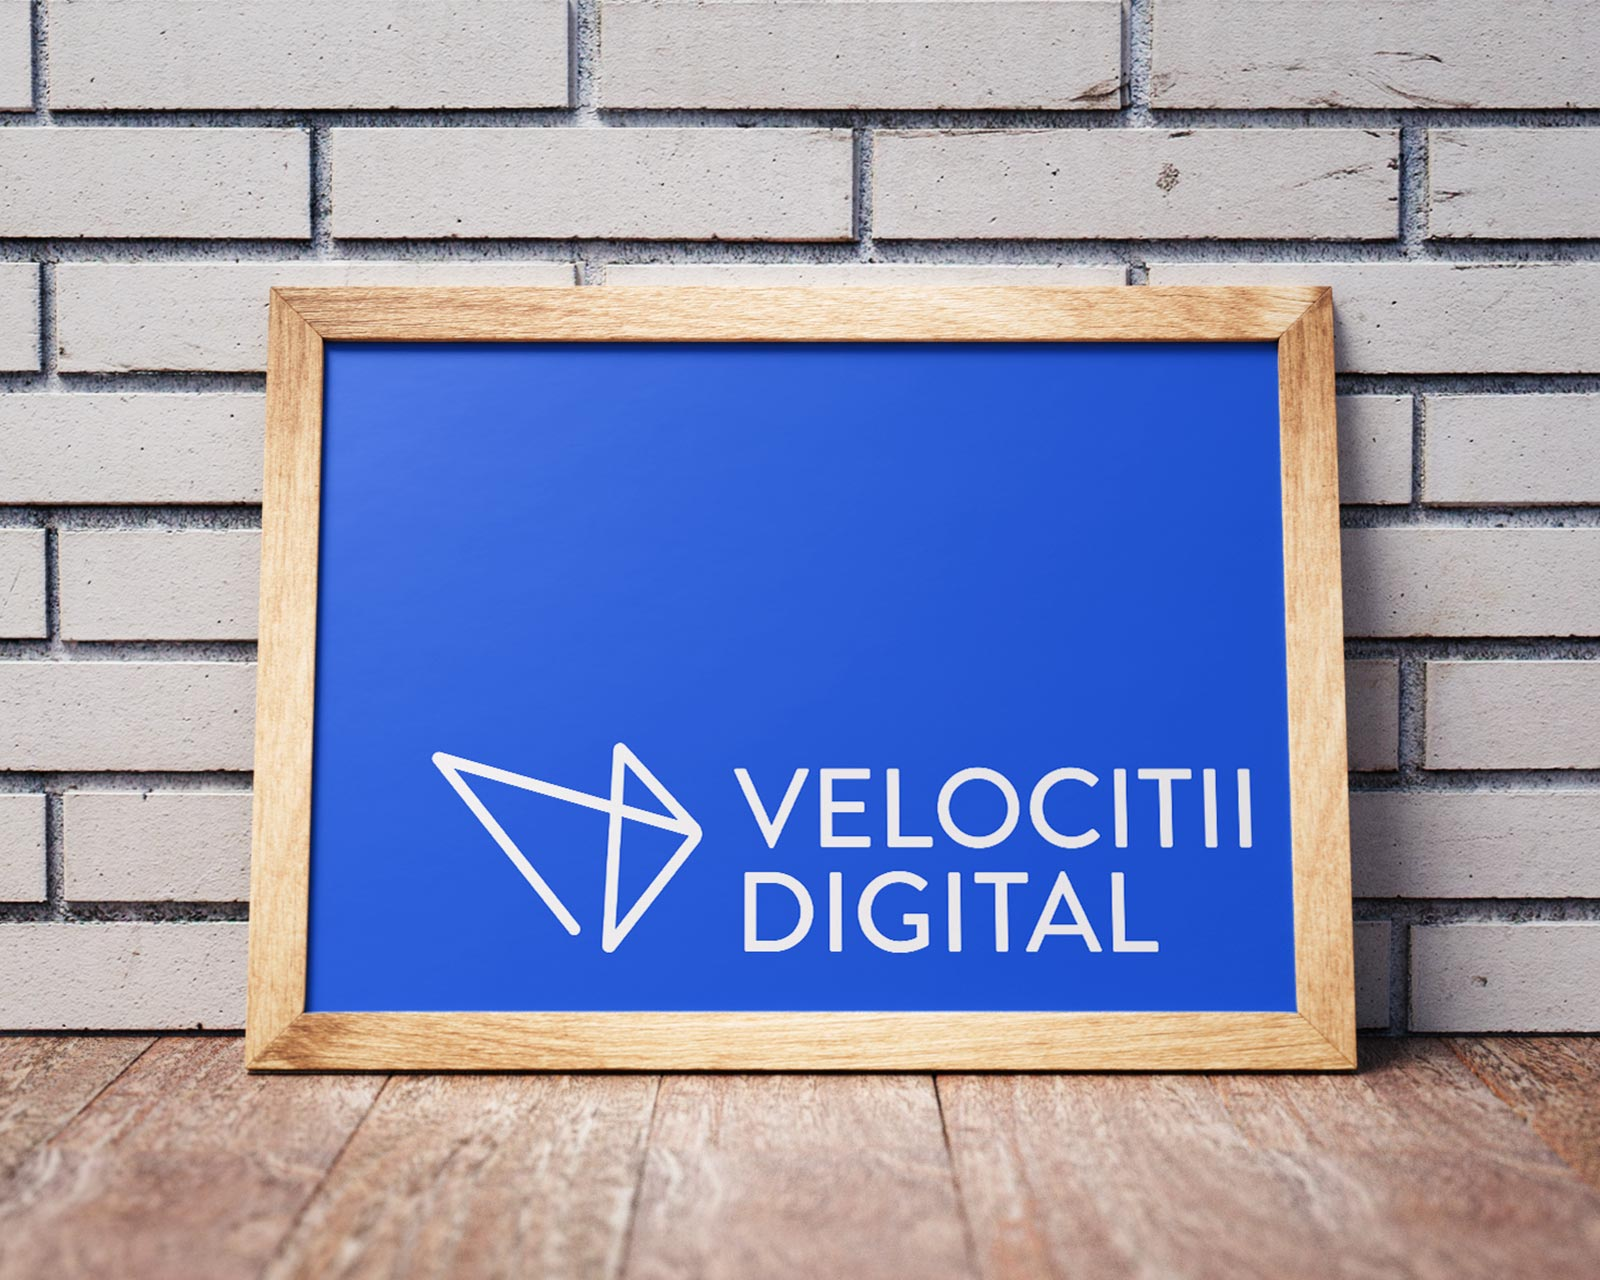 Velocitii Digital logo on a poster in front of a brick wall